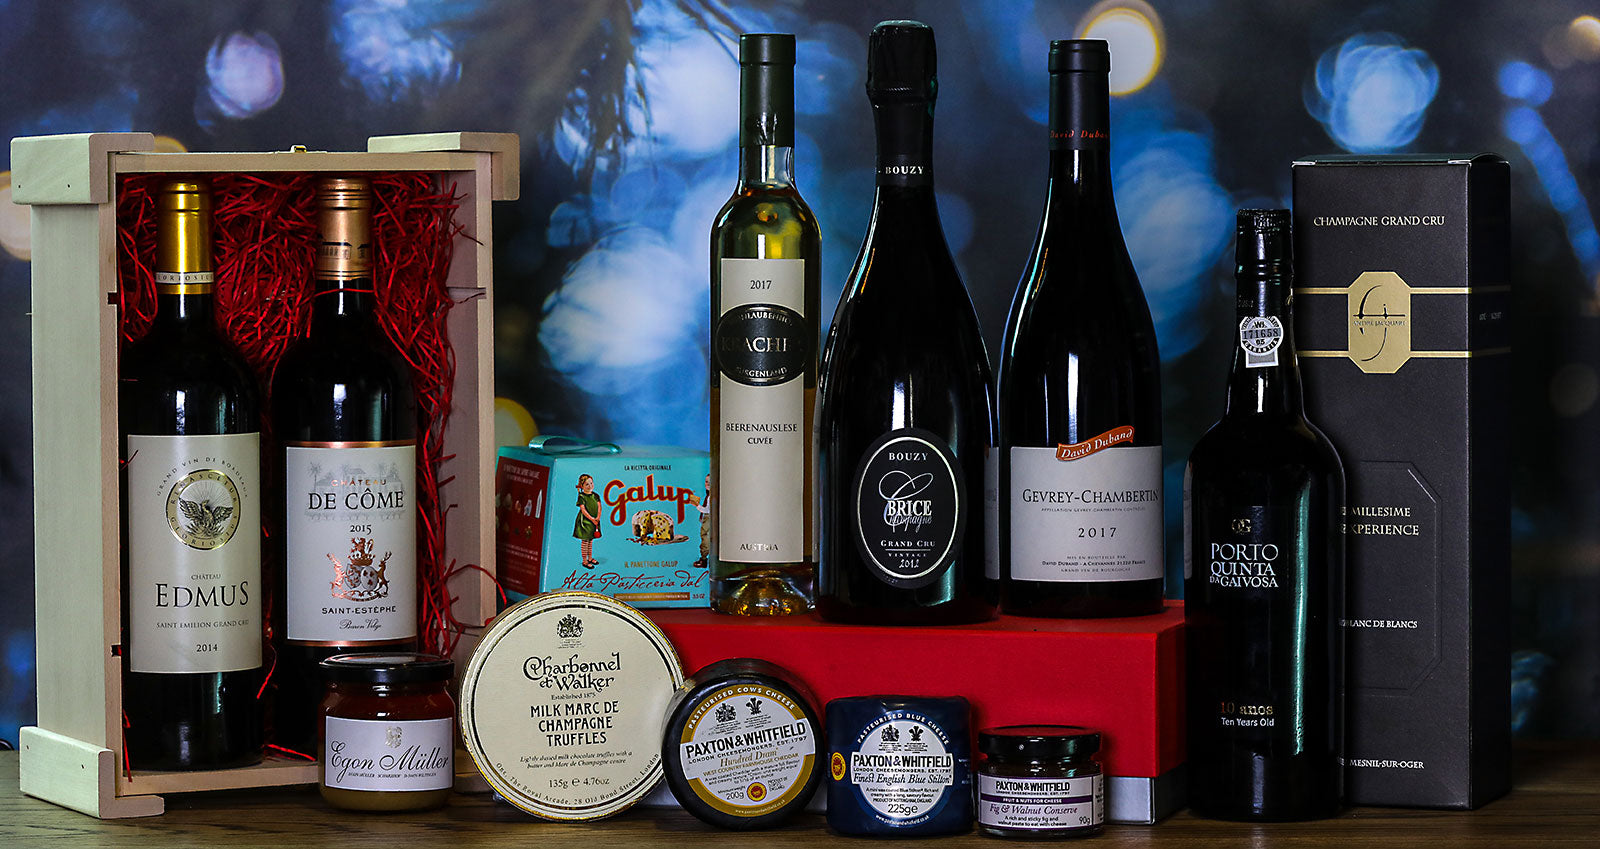 Chirstmas wine gifts and hampers from 9 Elms Wines